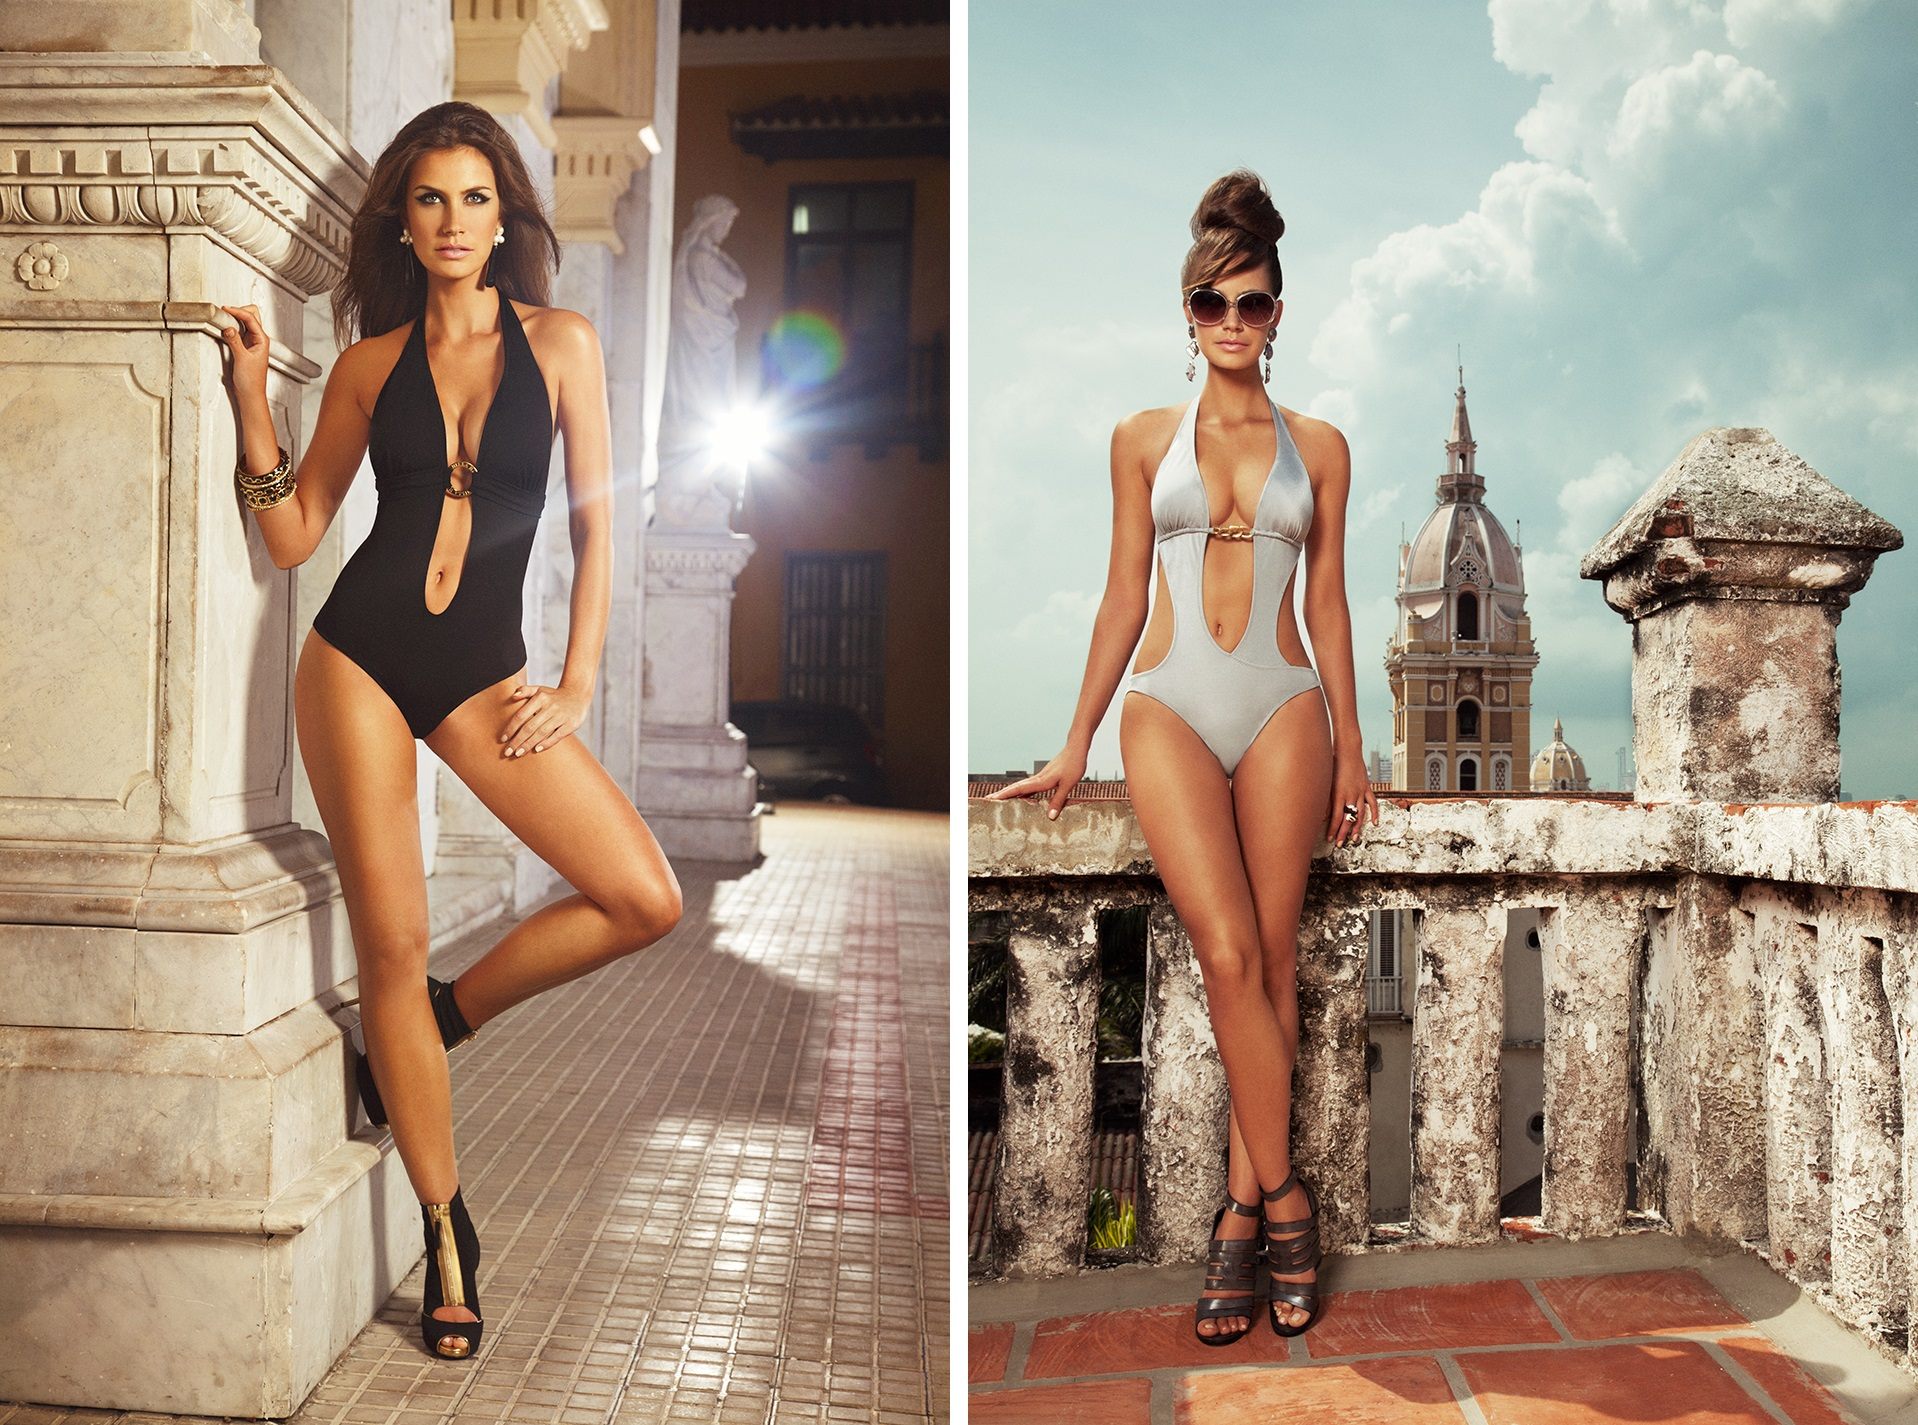 Left: Sobe Maillot Right: Monte Carlo Cut Out One Piece Images courtesy of Verano High